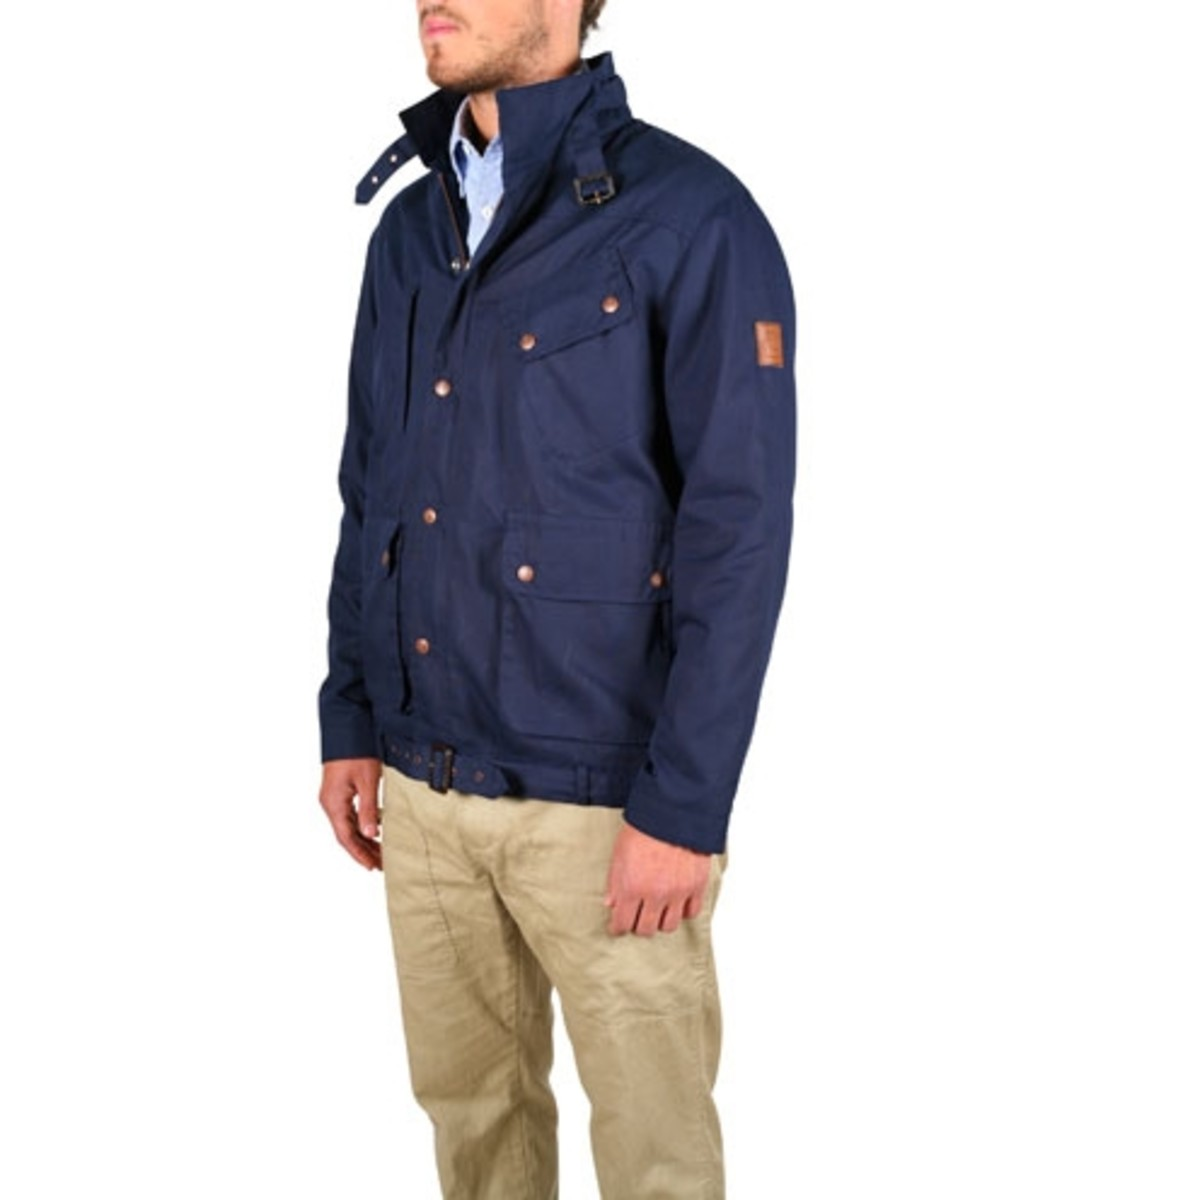 Penfield SS2011 Jackets 17